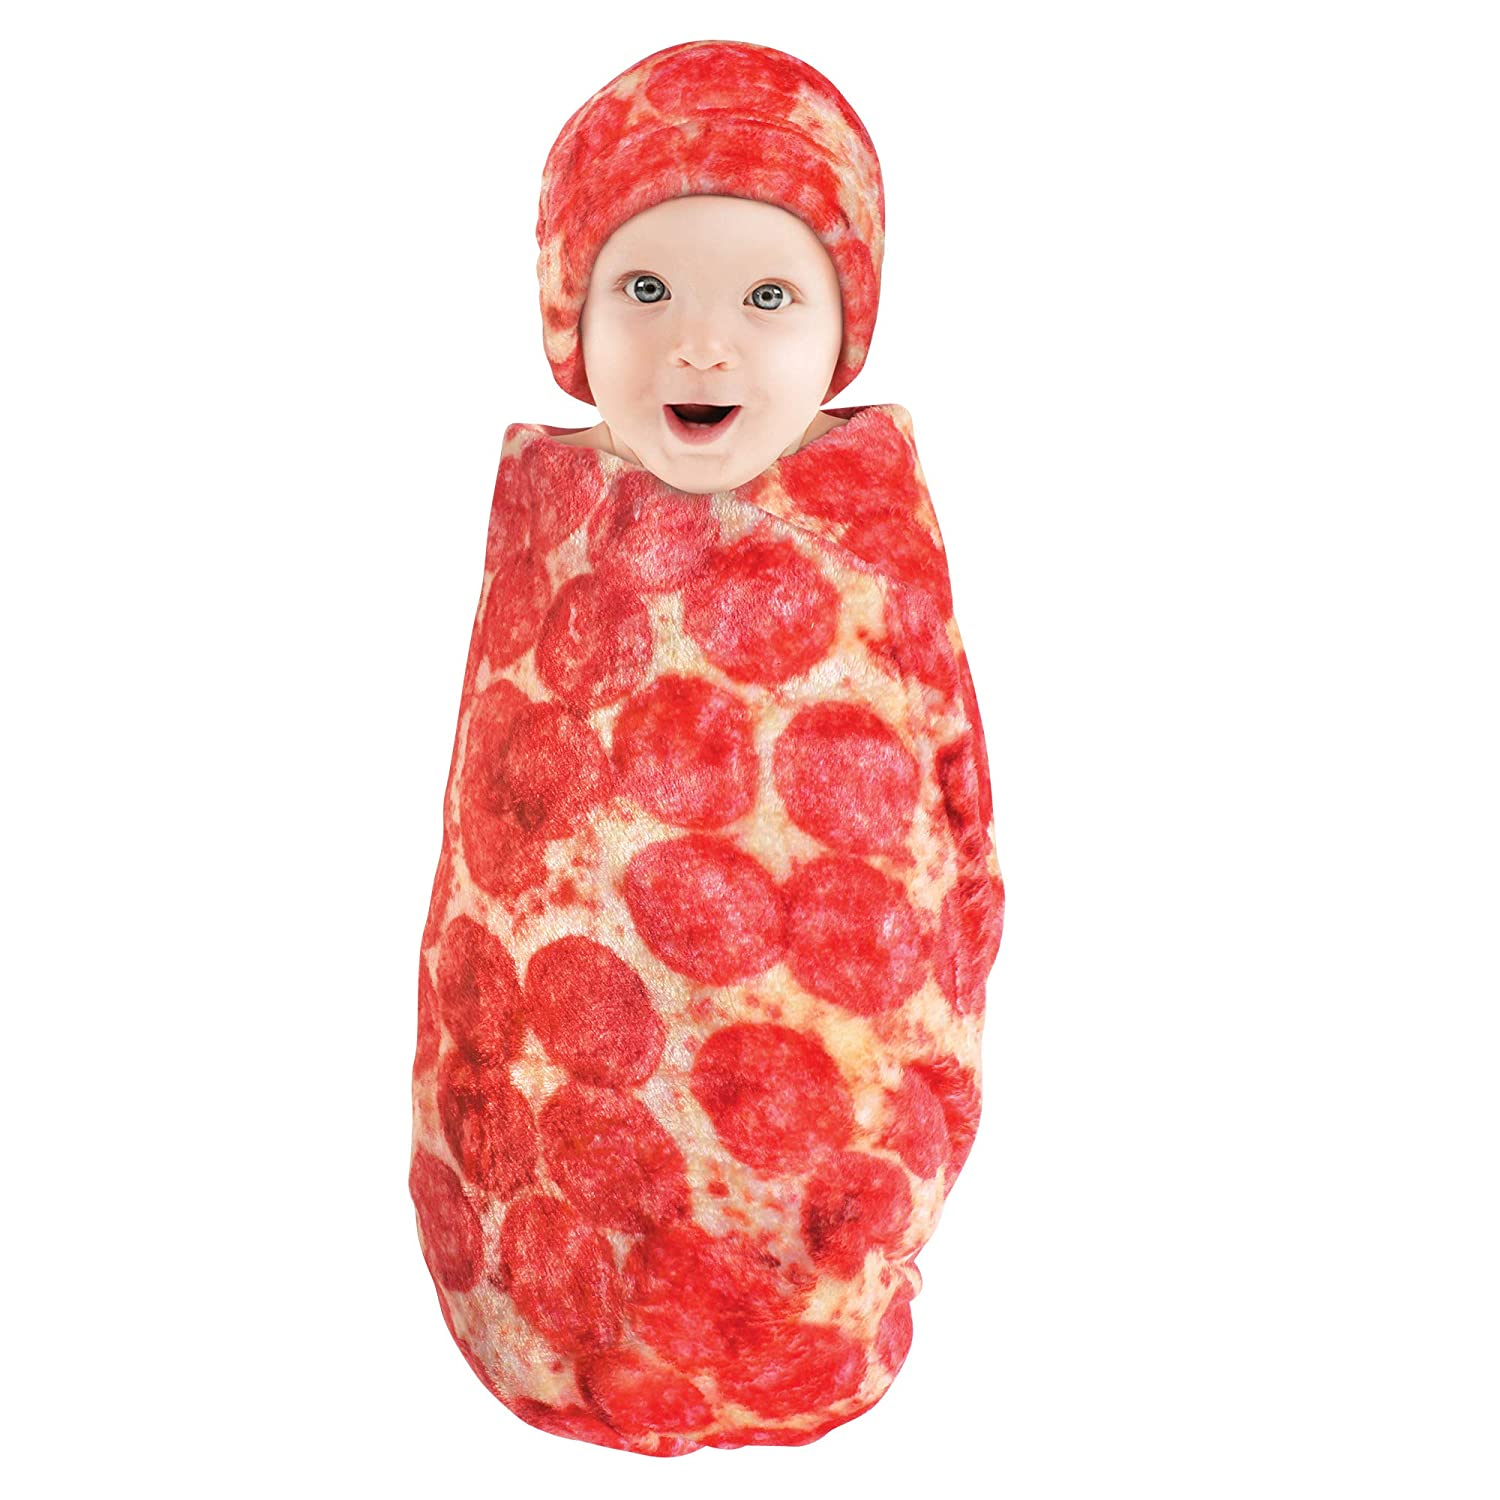 Hudson Baby Unisex Baby Plush Food Burrito or Pizza Blanket and Cap, Pepperoni Pizza, 0-12 Months